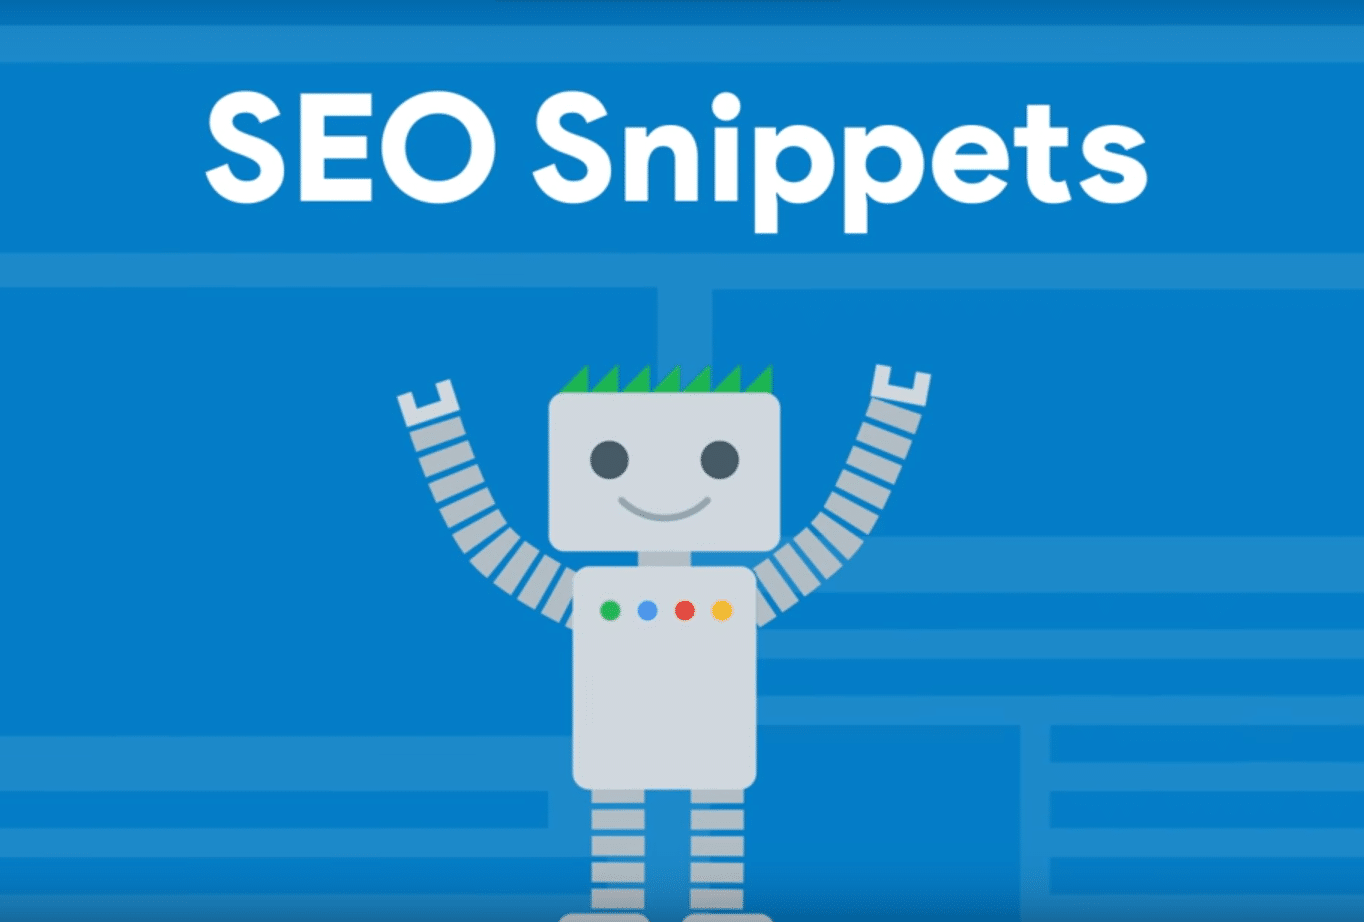 seo snippets logo